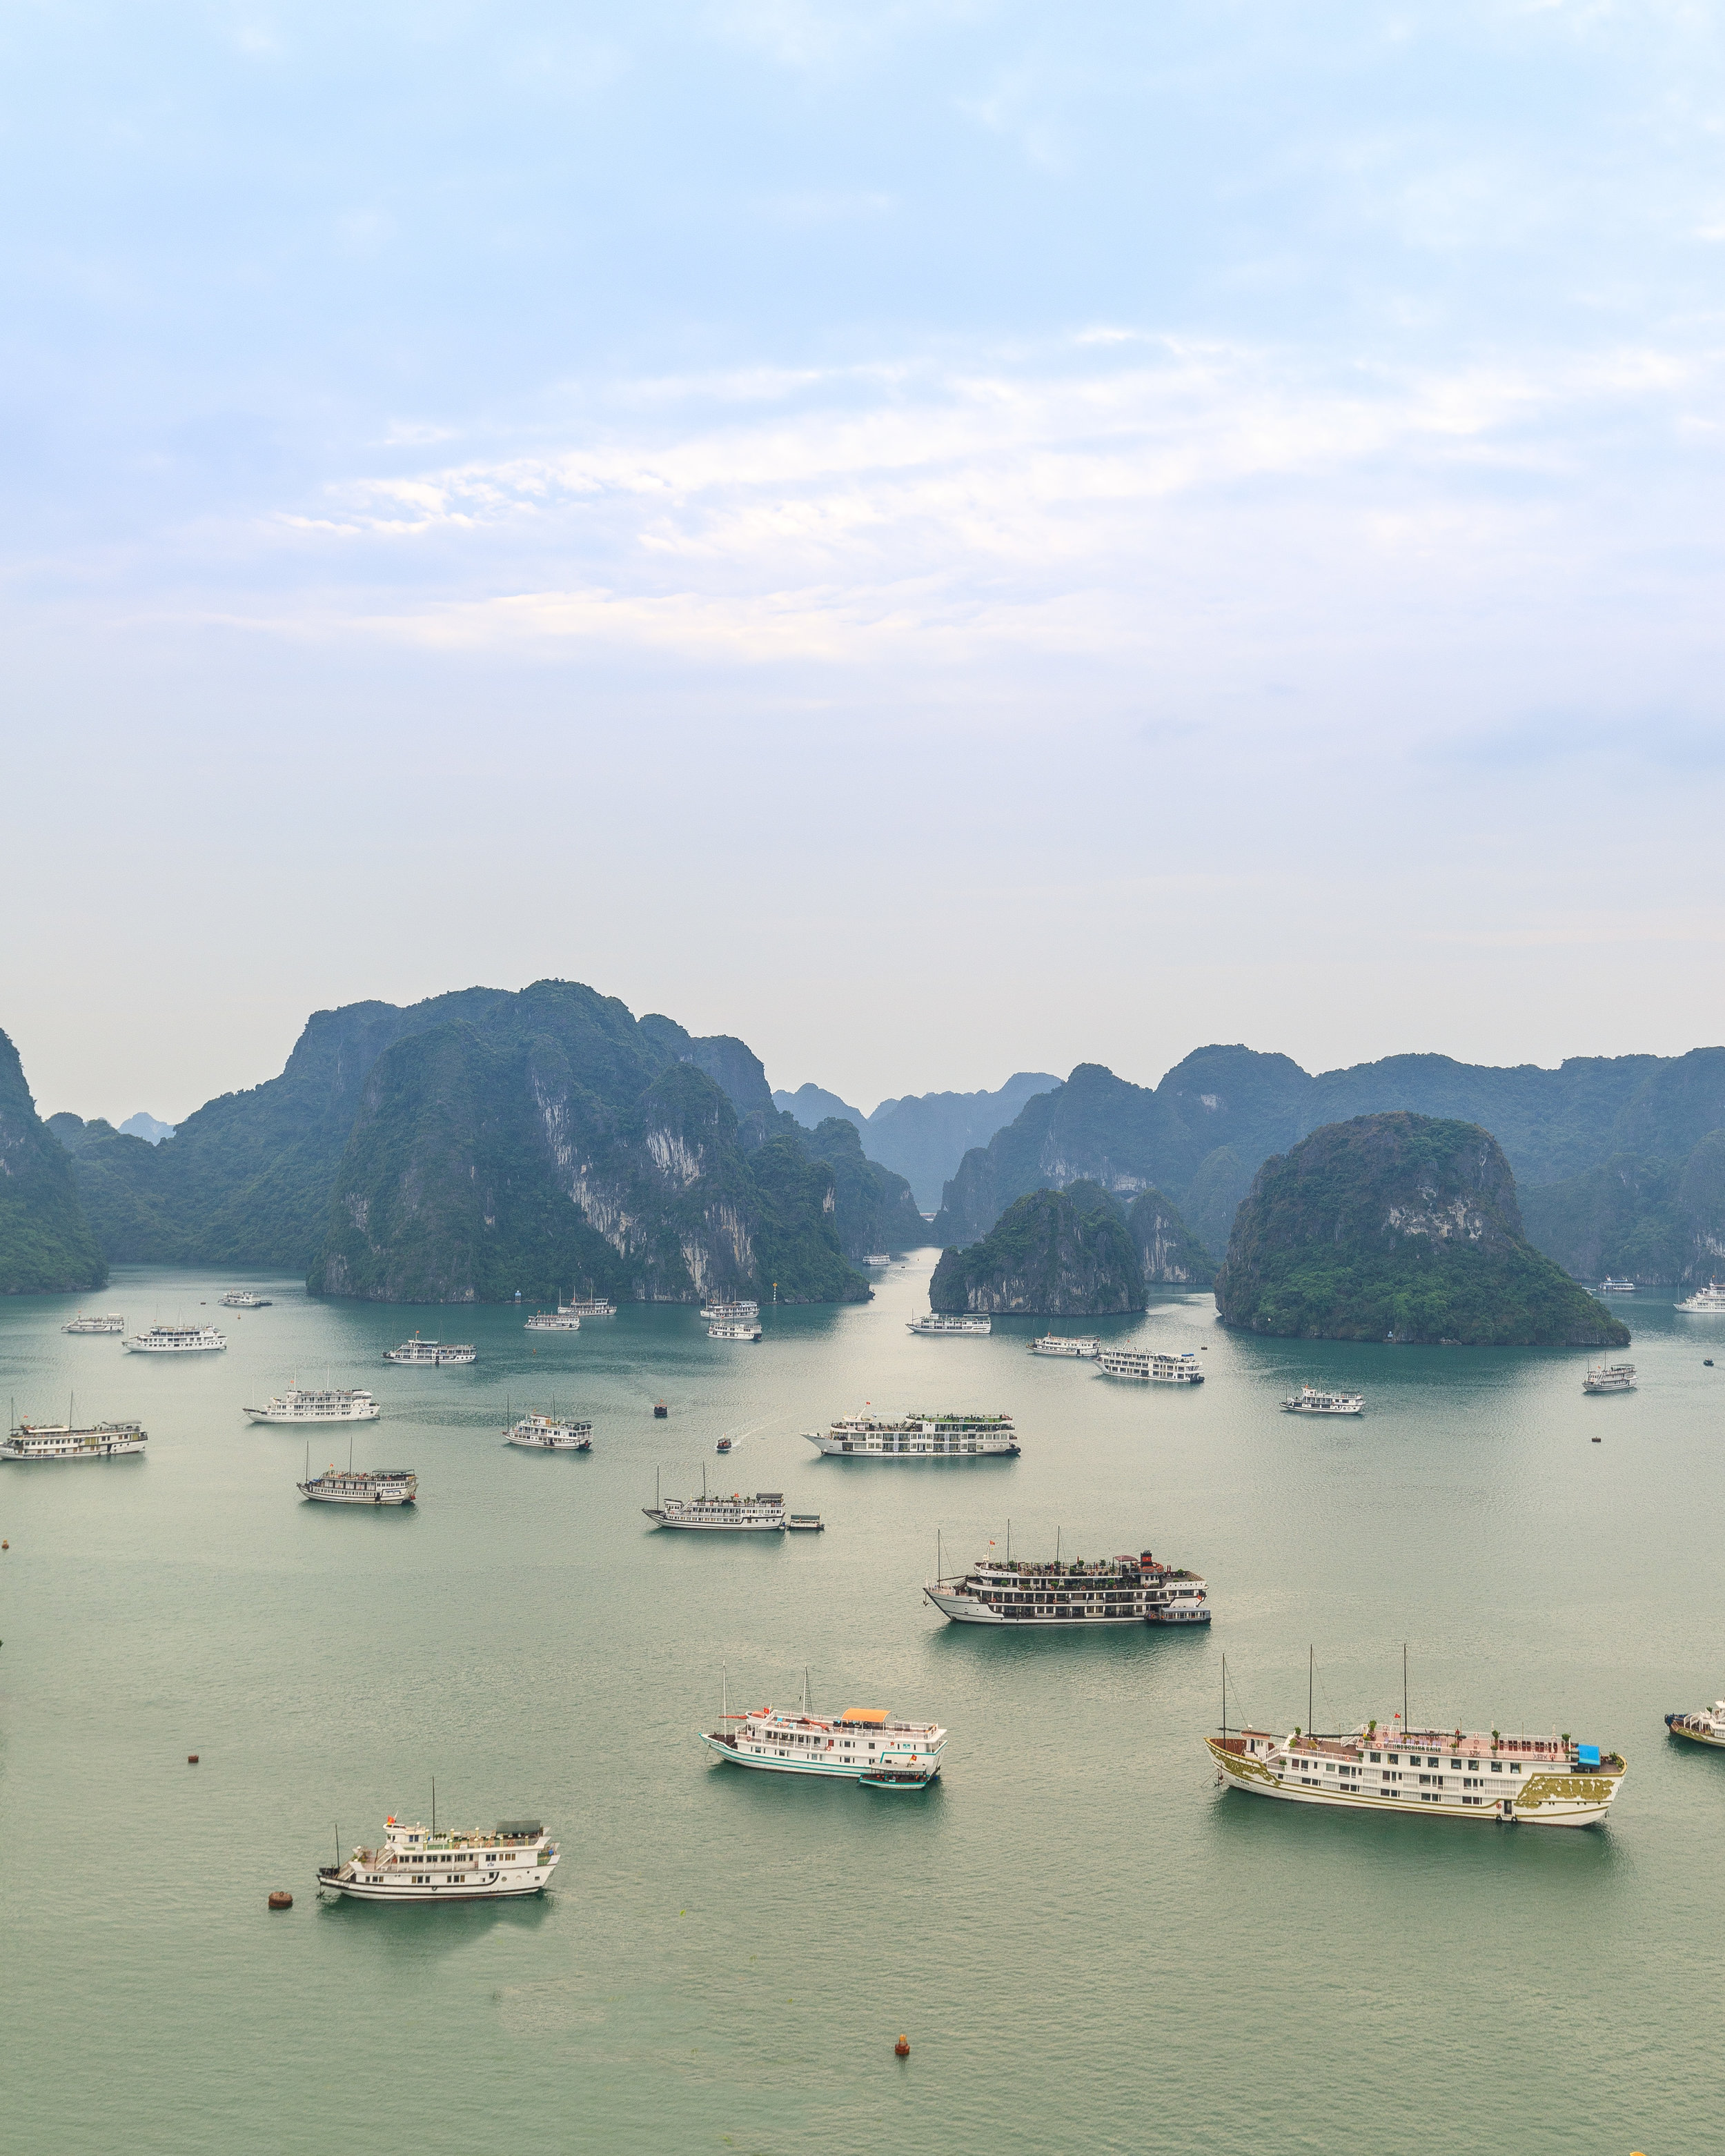 A glimpse of how busy Halong Bay can get